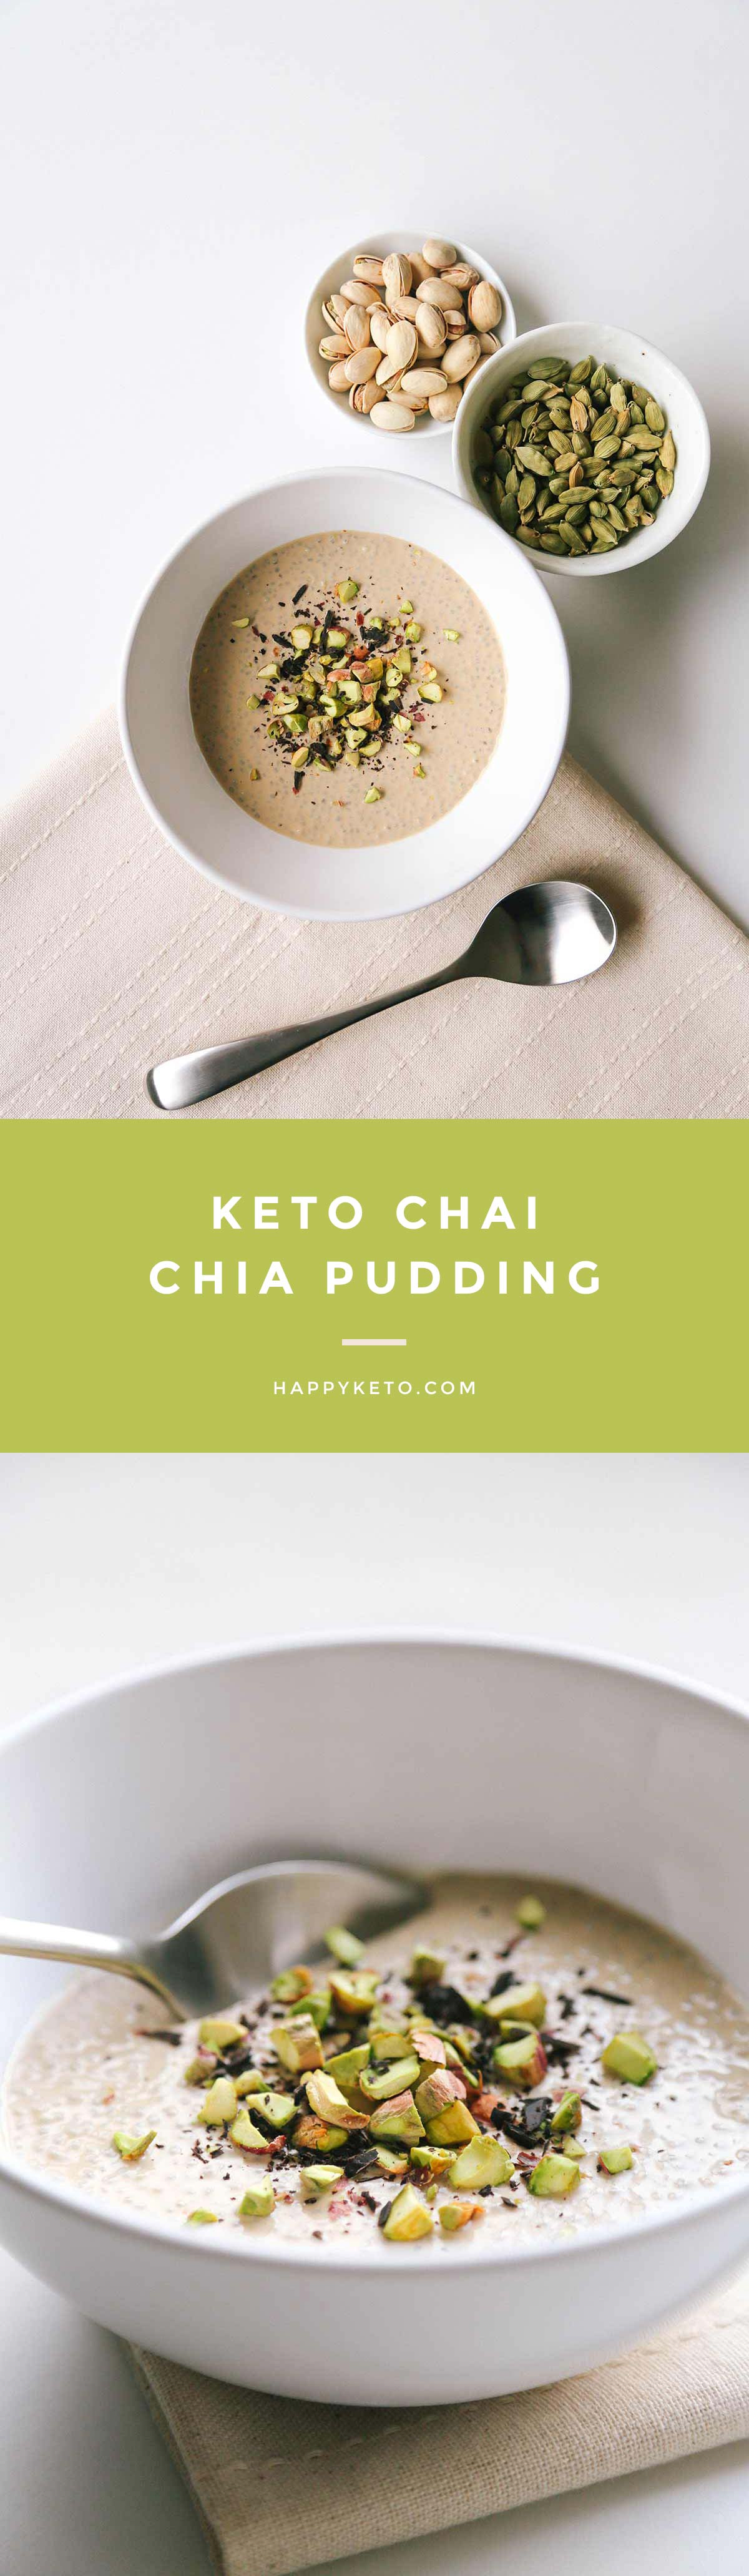 Keto Chai Chia Pudding for ketogenic and low carb. Easy recipe with chia seeds and coconut milk. keto, keto chia pudding, keto chia seed recipes, keto chia seed pudding, keto chia pudding low carb, keto breakfast, keto recipes, ketogenic diet, keto dessert, keto easy recipes, keto easy, keto meals, keto quick meals, keto recipes easy, low carb, low carb recipes, low carb chia pudding, lchf, lchf recipes